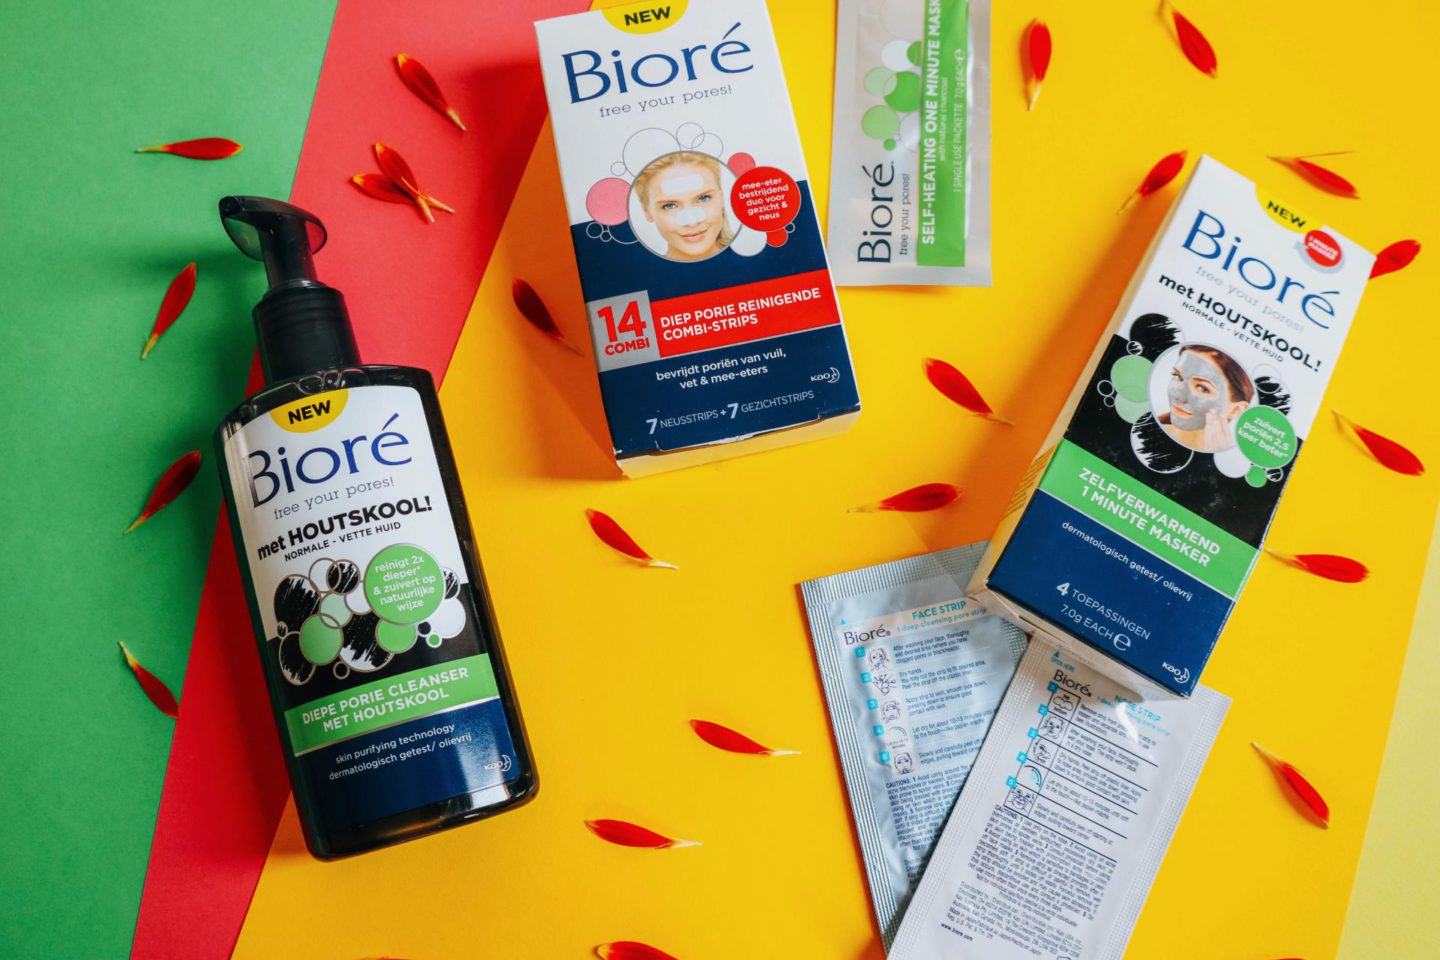 Free your pores with skin care brand Bioré